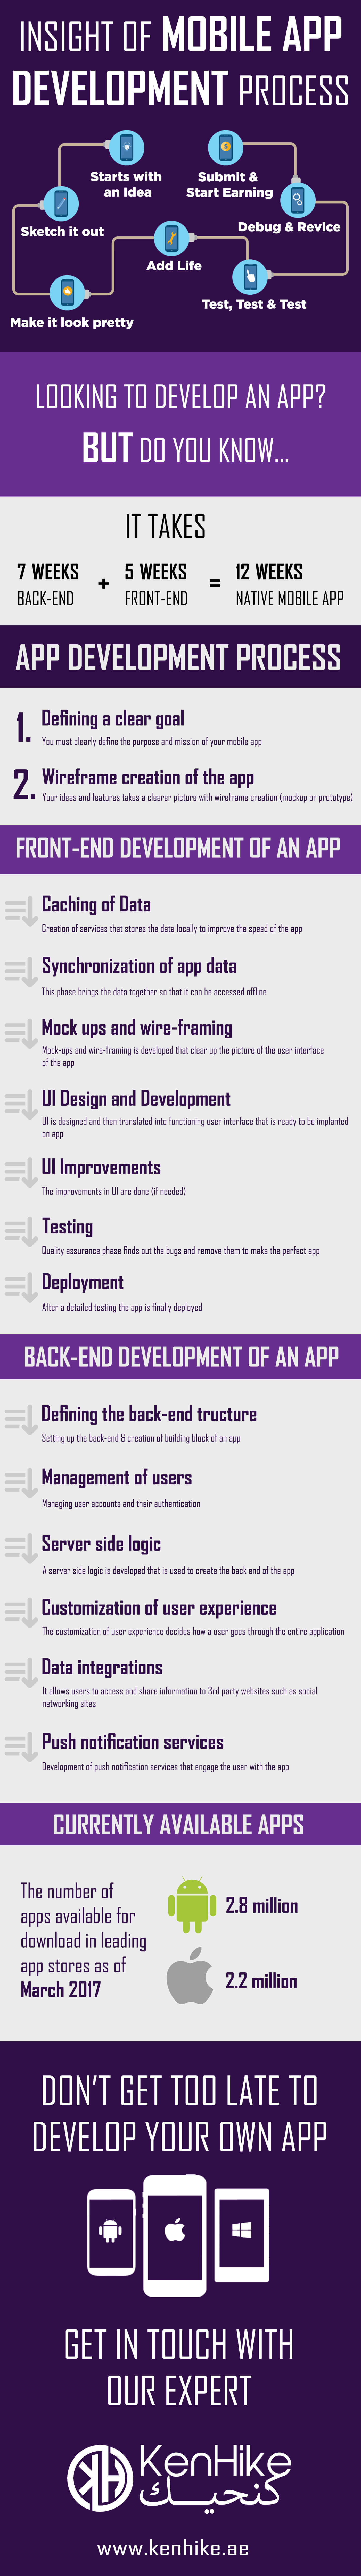 Insight-Of-Mobile-App-Development-Process